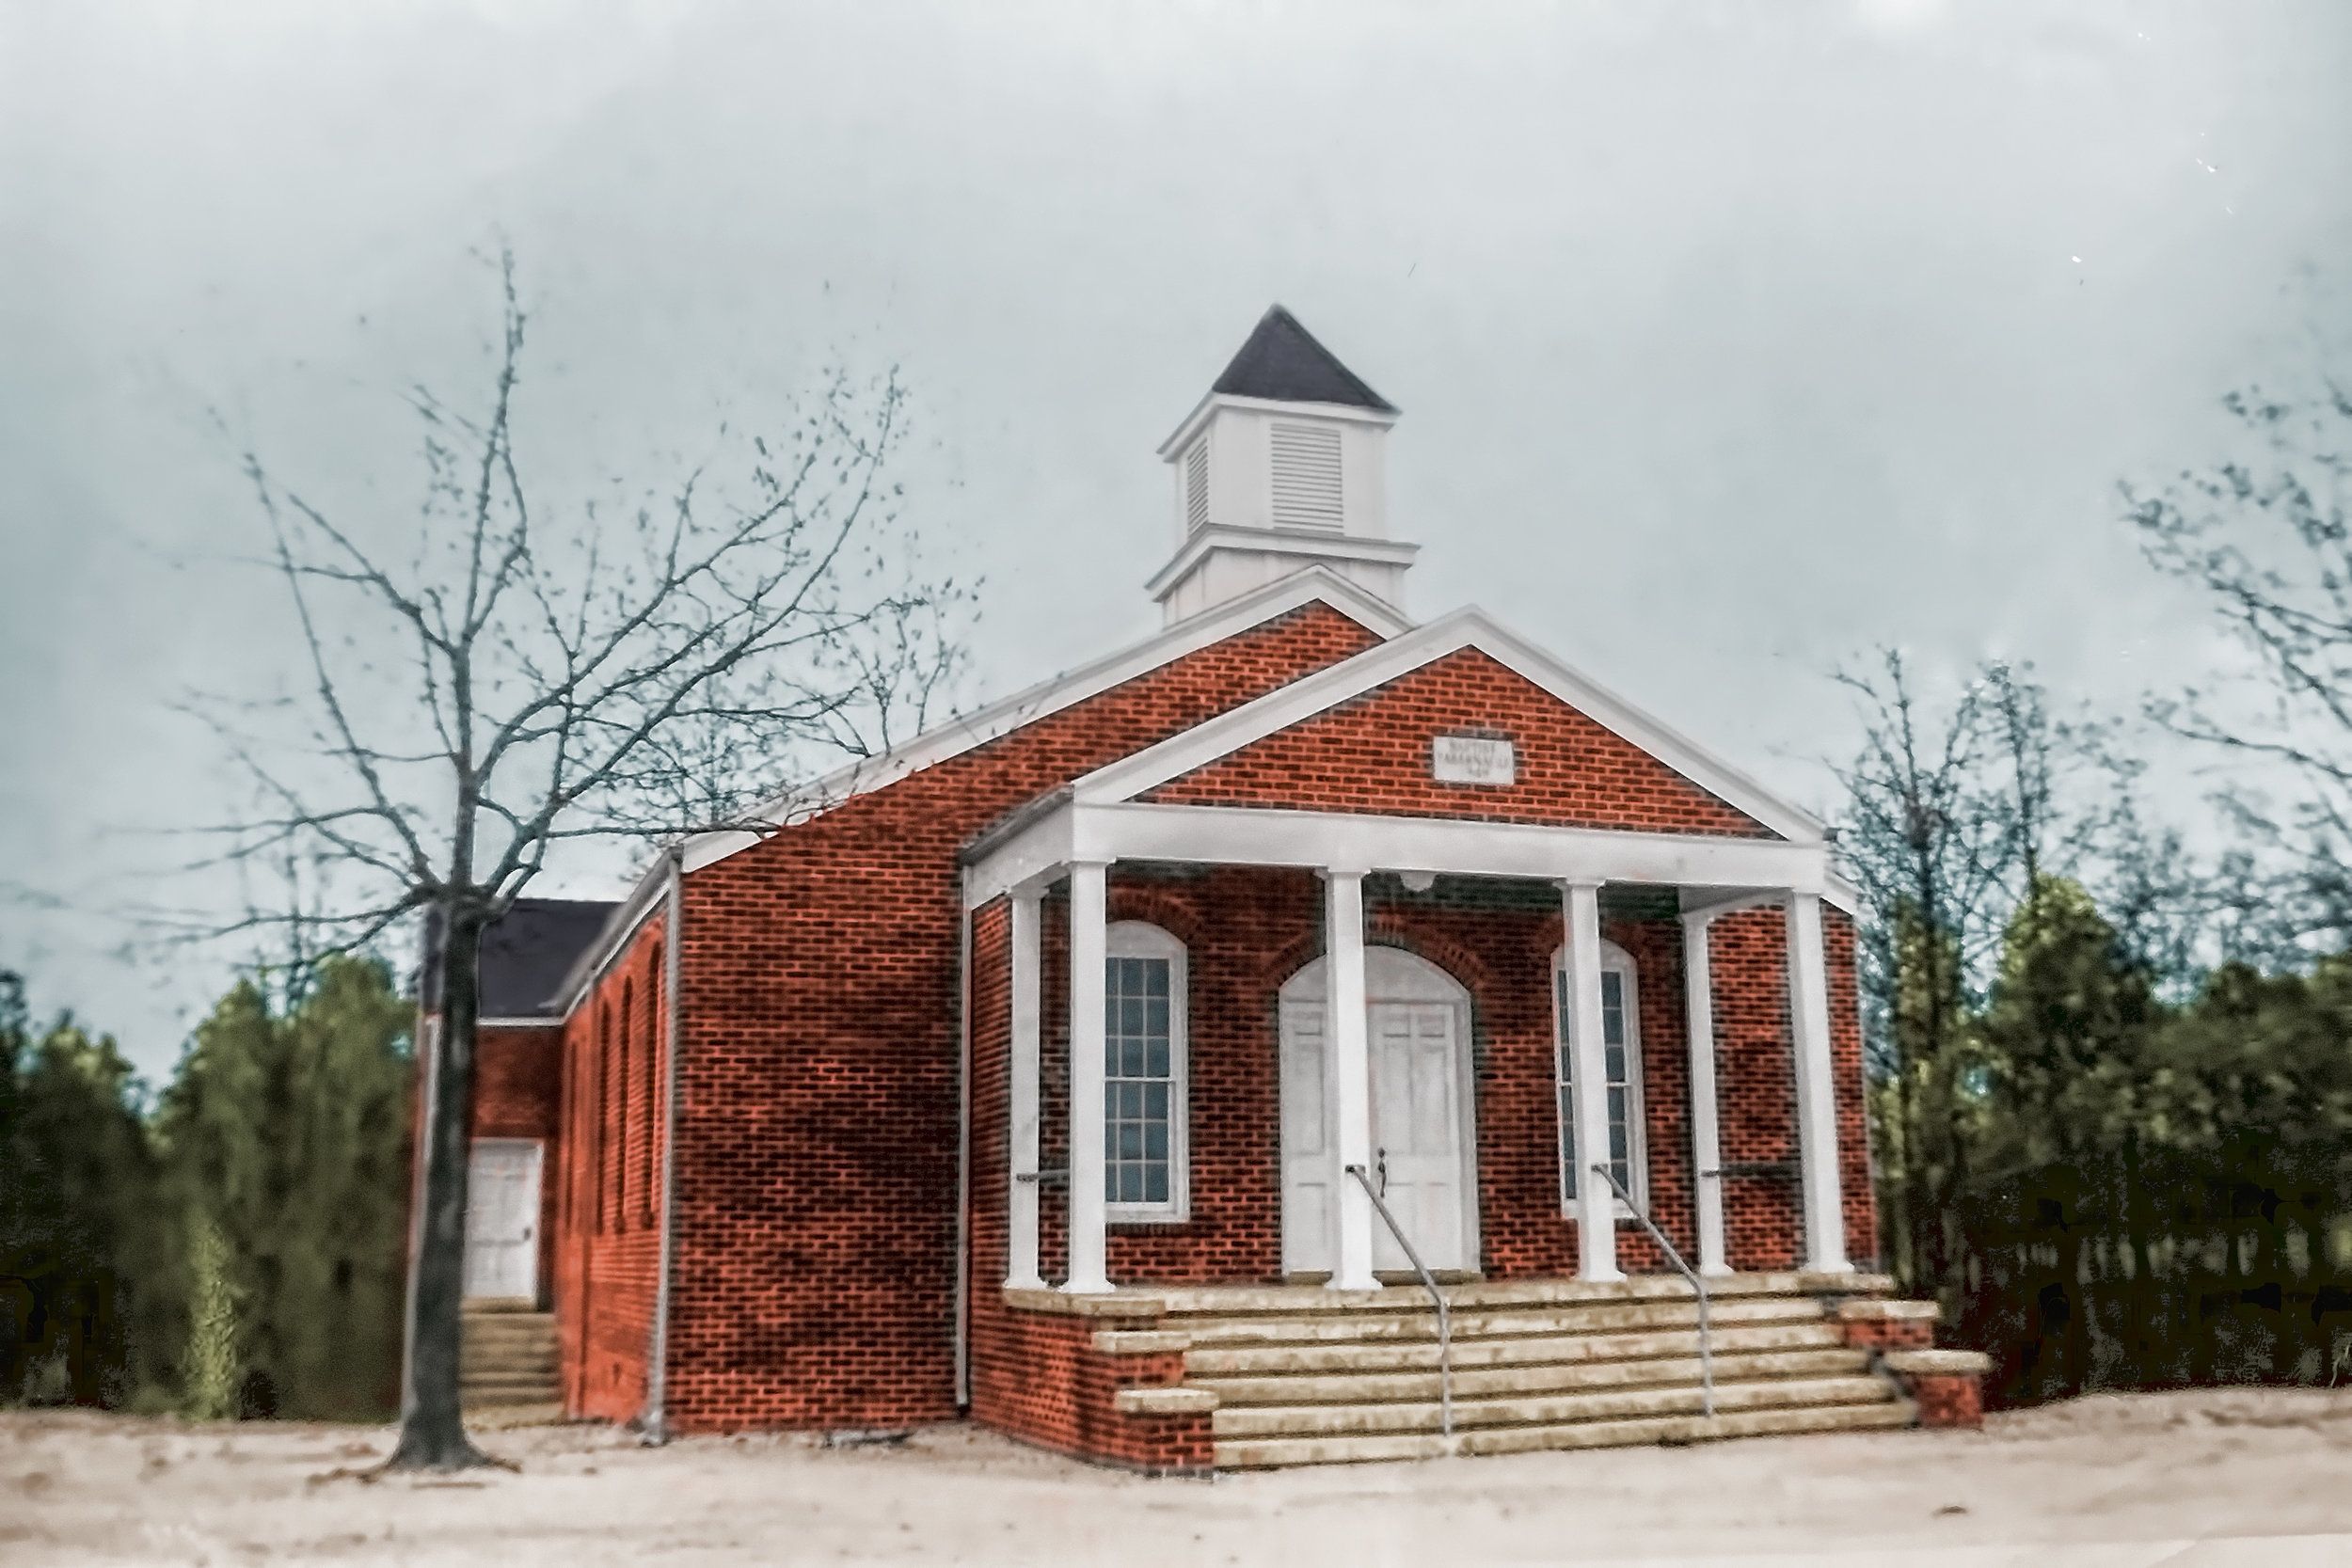 The last worship service in the church built in 1949 was held July 25, 1971.